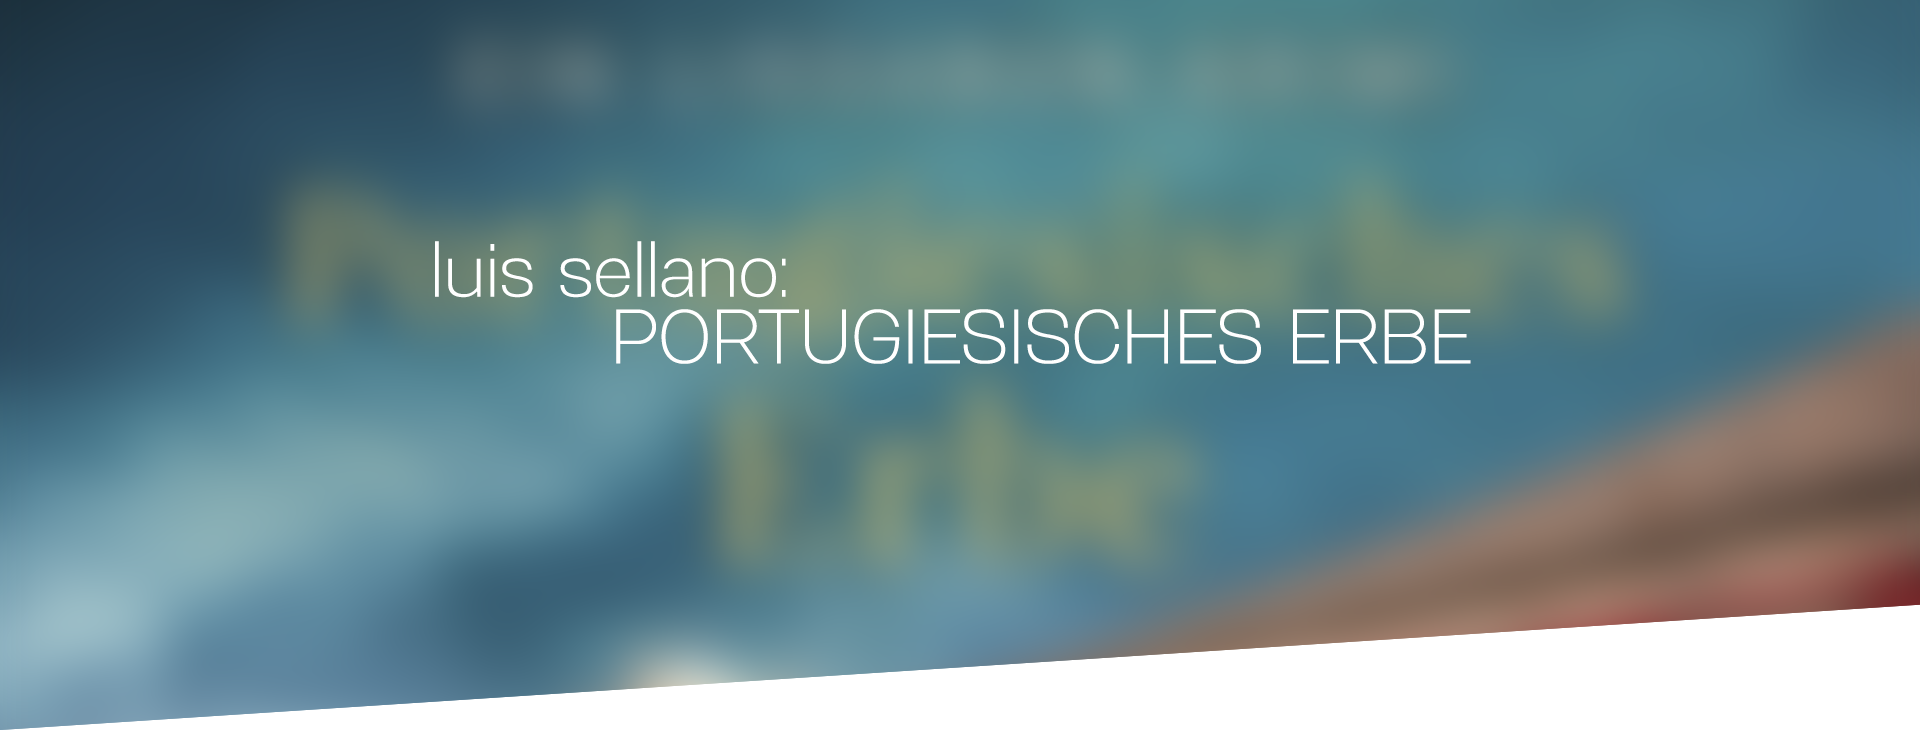 luis sellano portugiesisches erbe_header